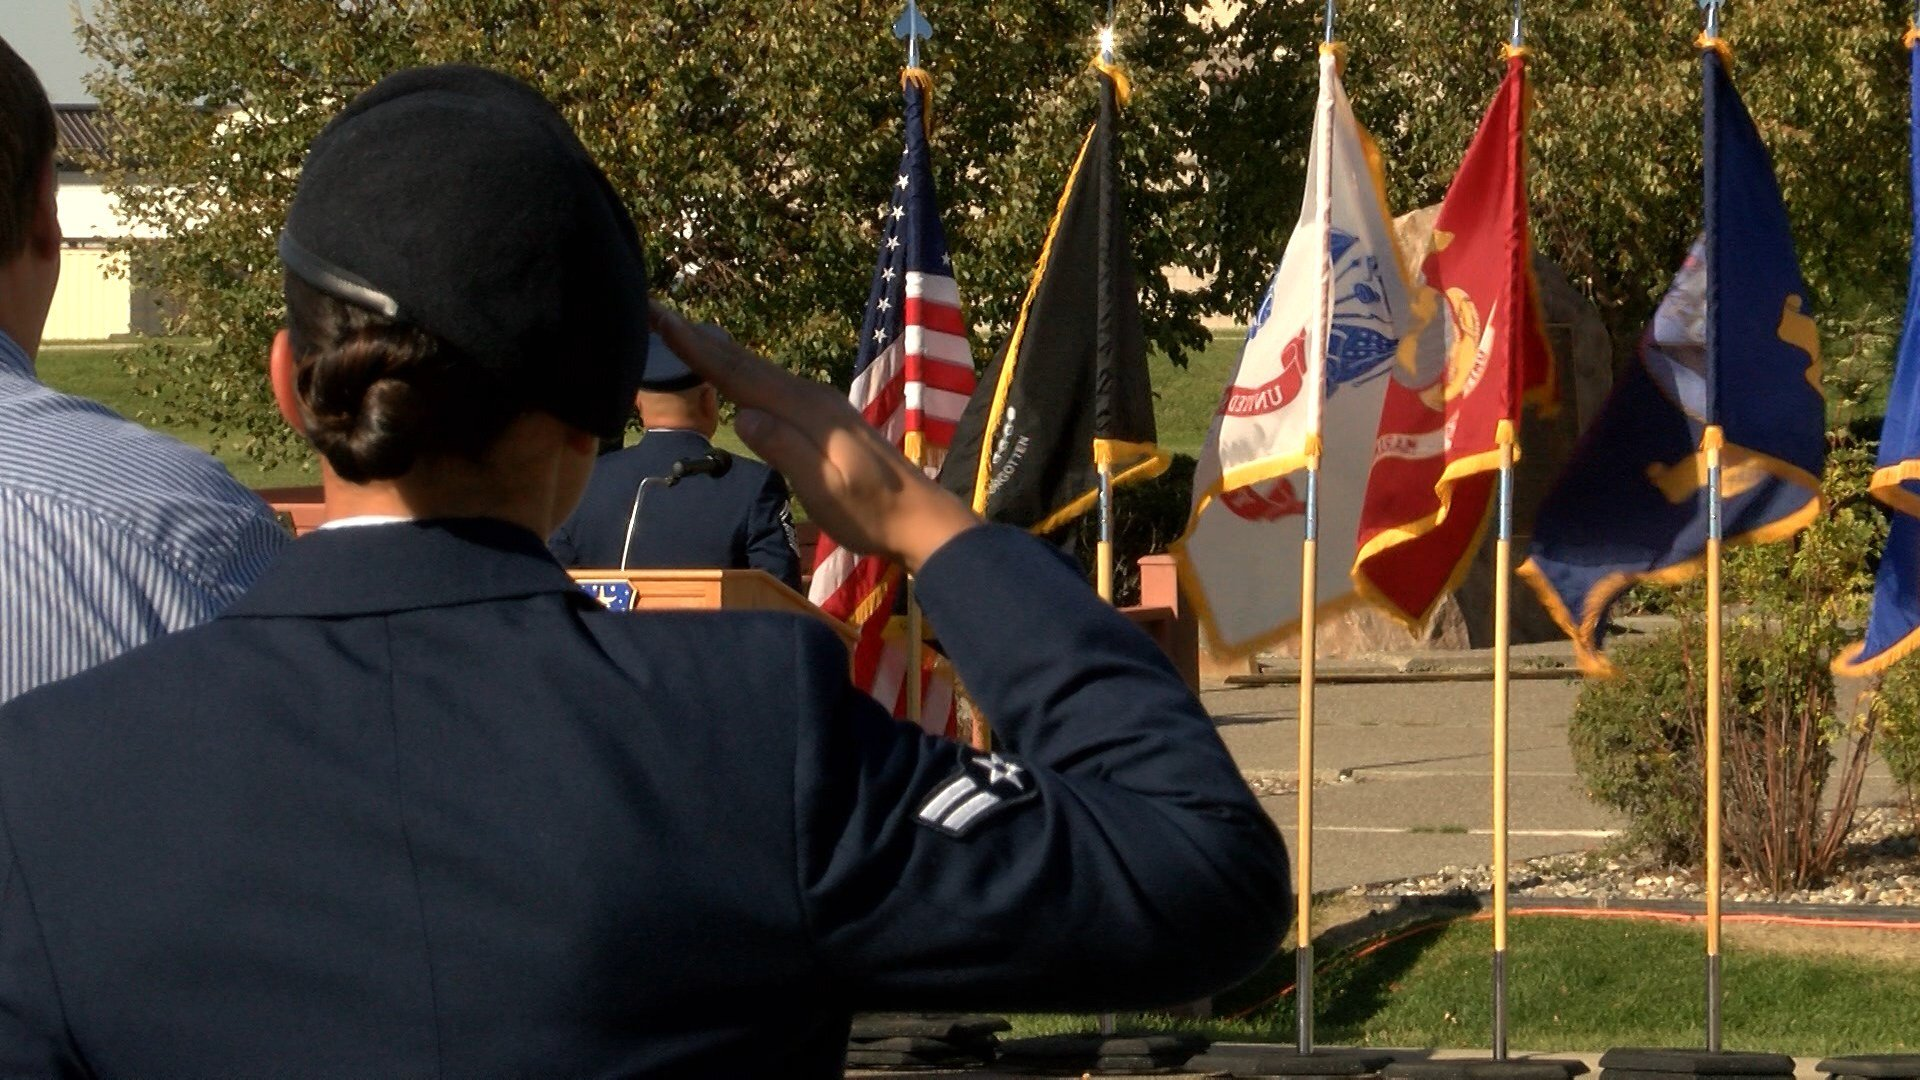 Malmstrom Air Force Base honored Americans in all branches of the armed forces during National POW/MIA Day Friday.